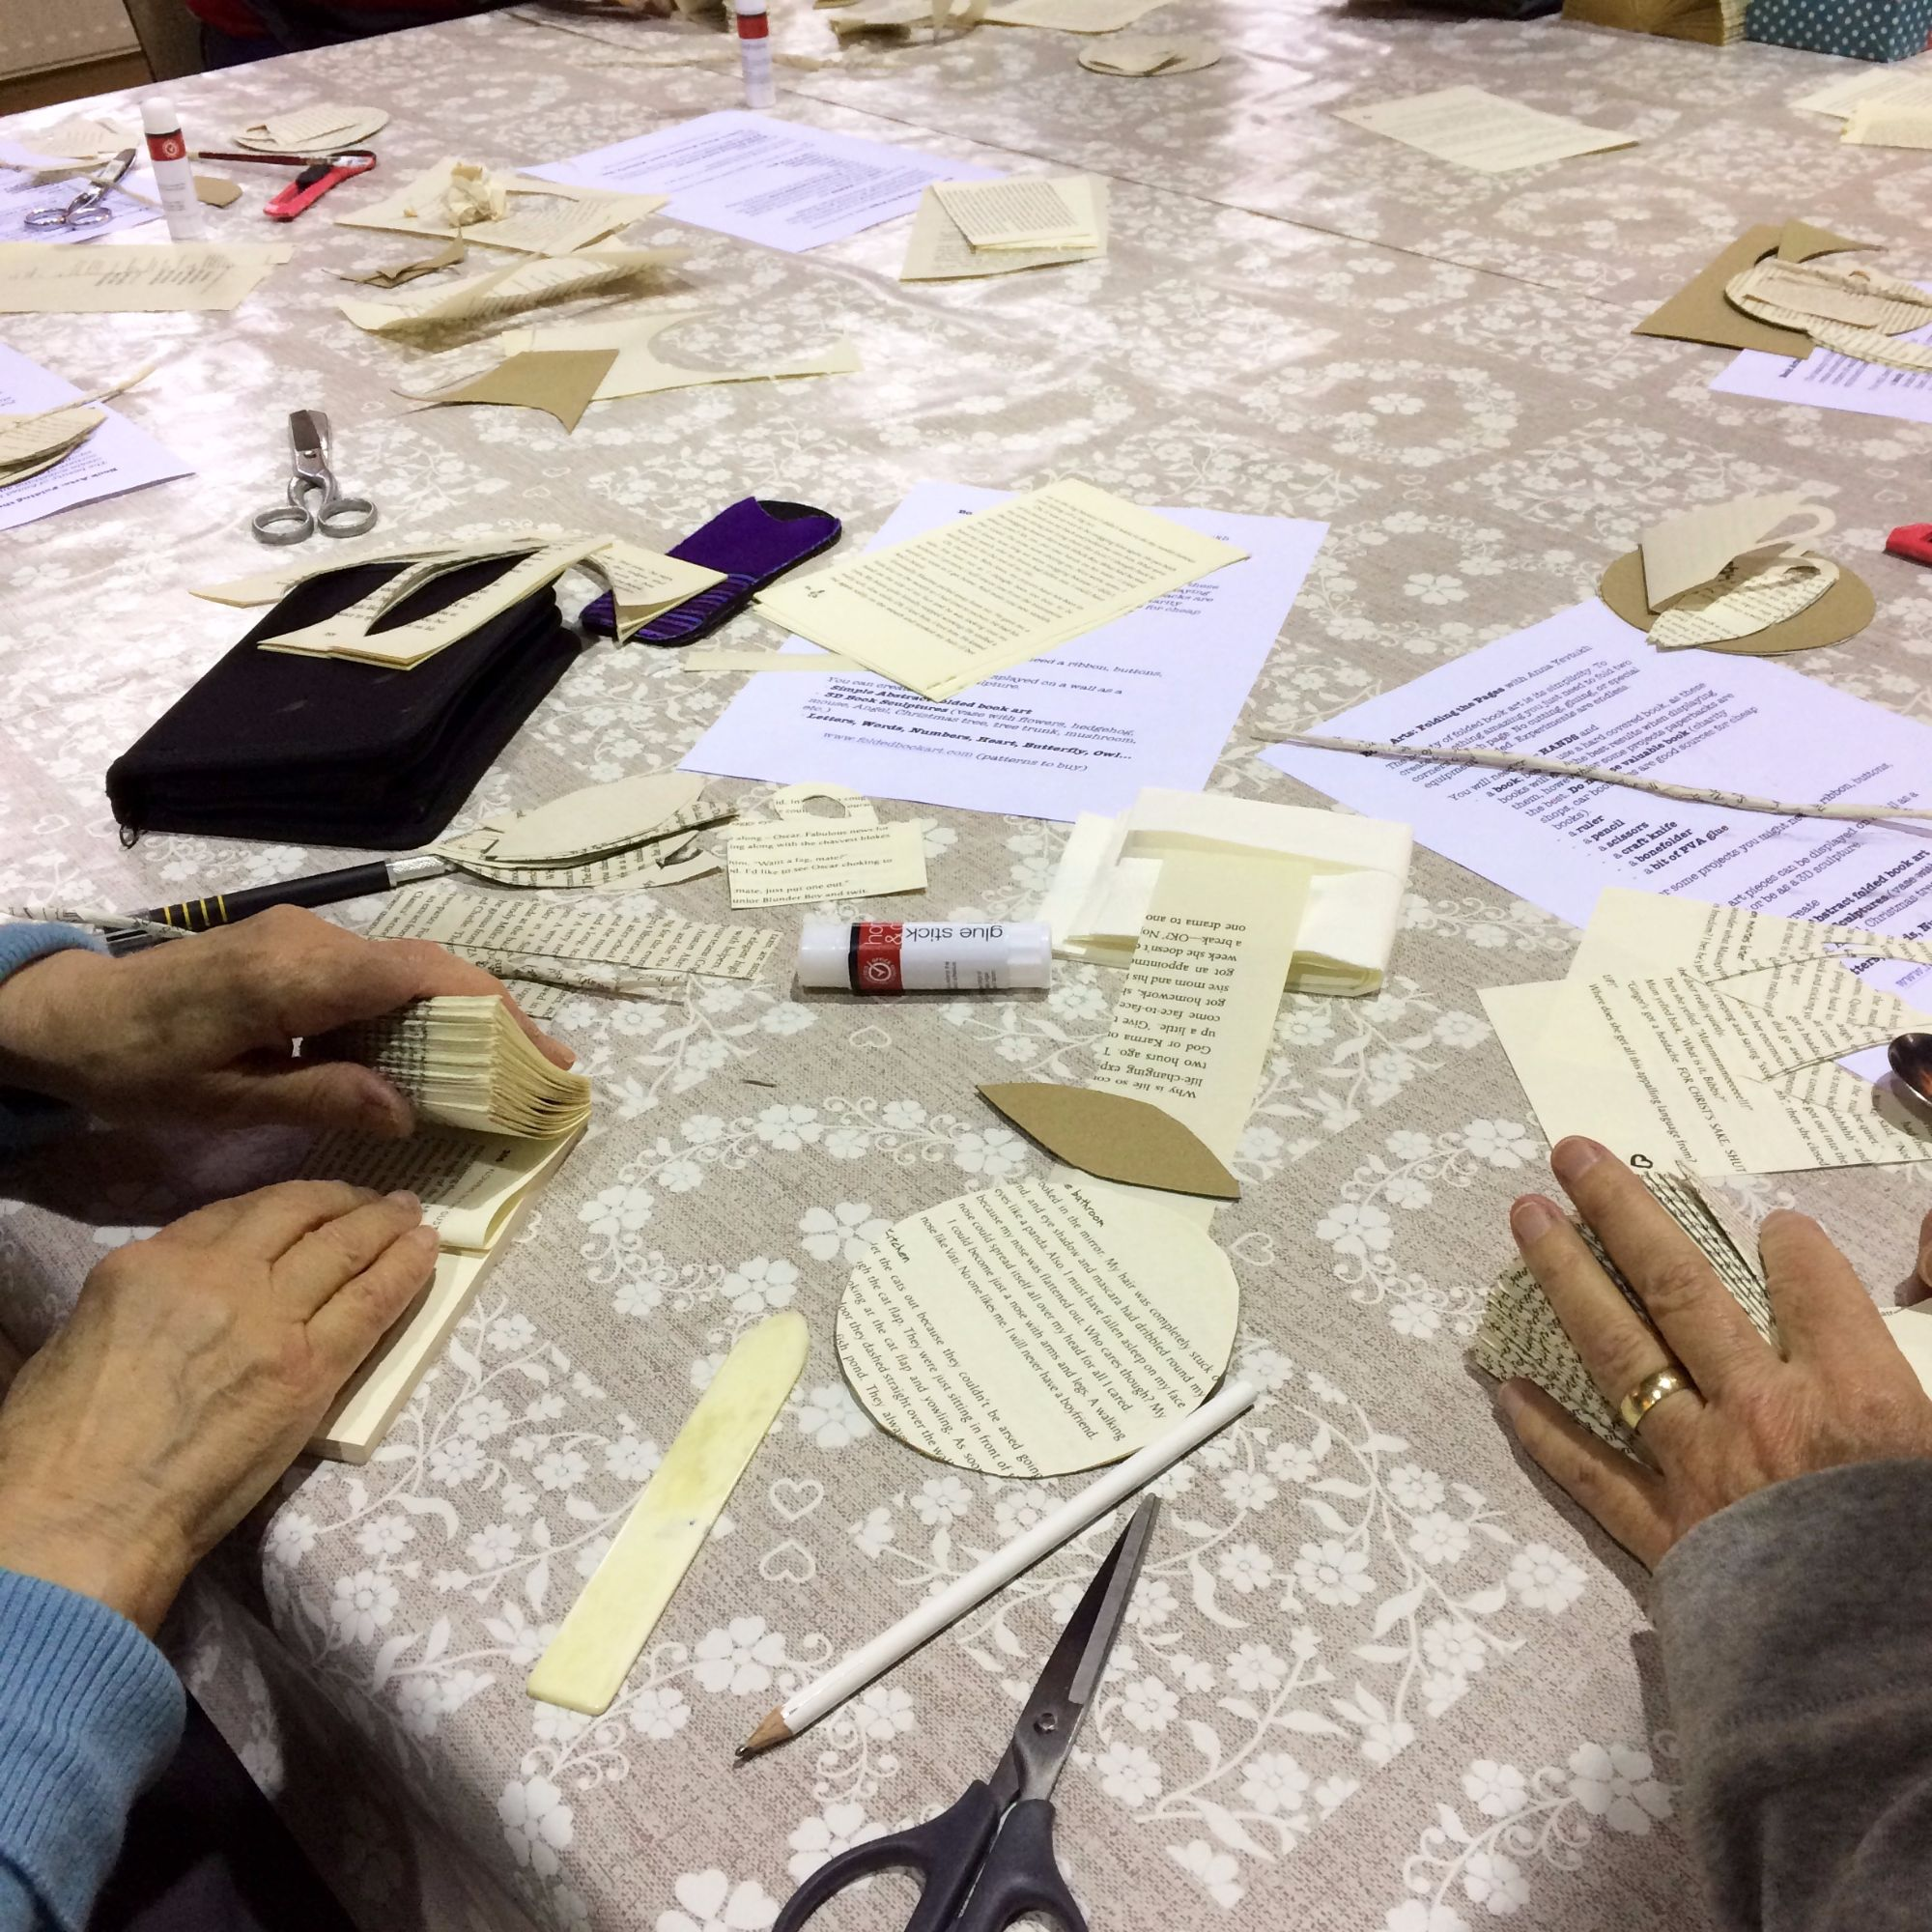 Folding Pages Book Art Workshop - The Beginnings